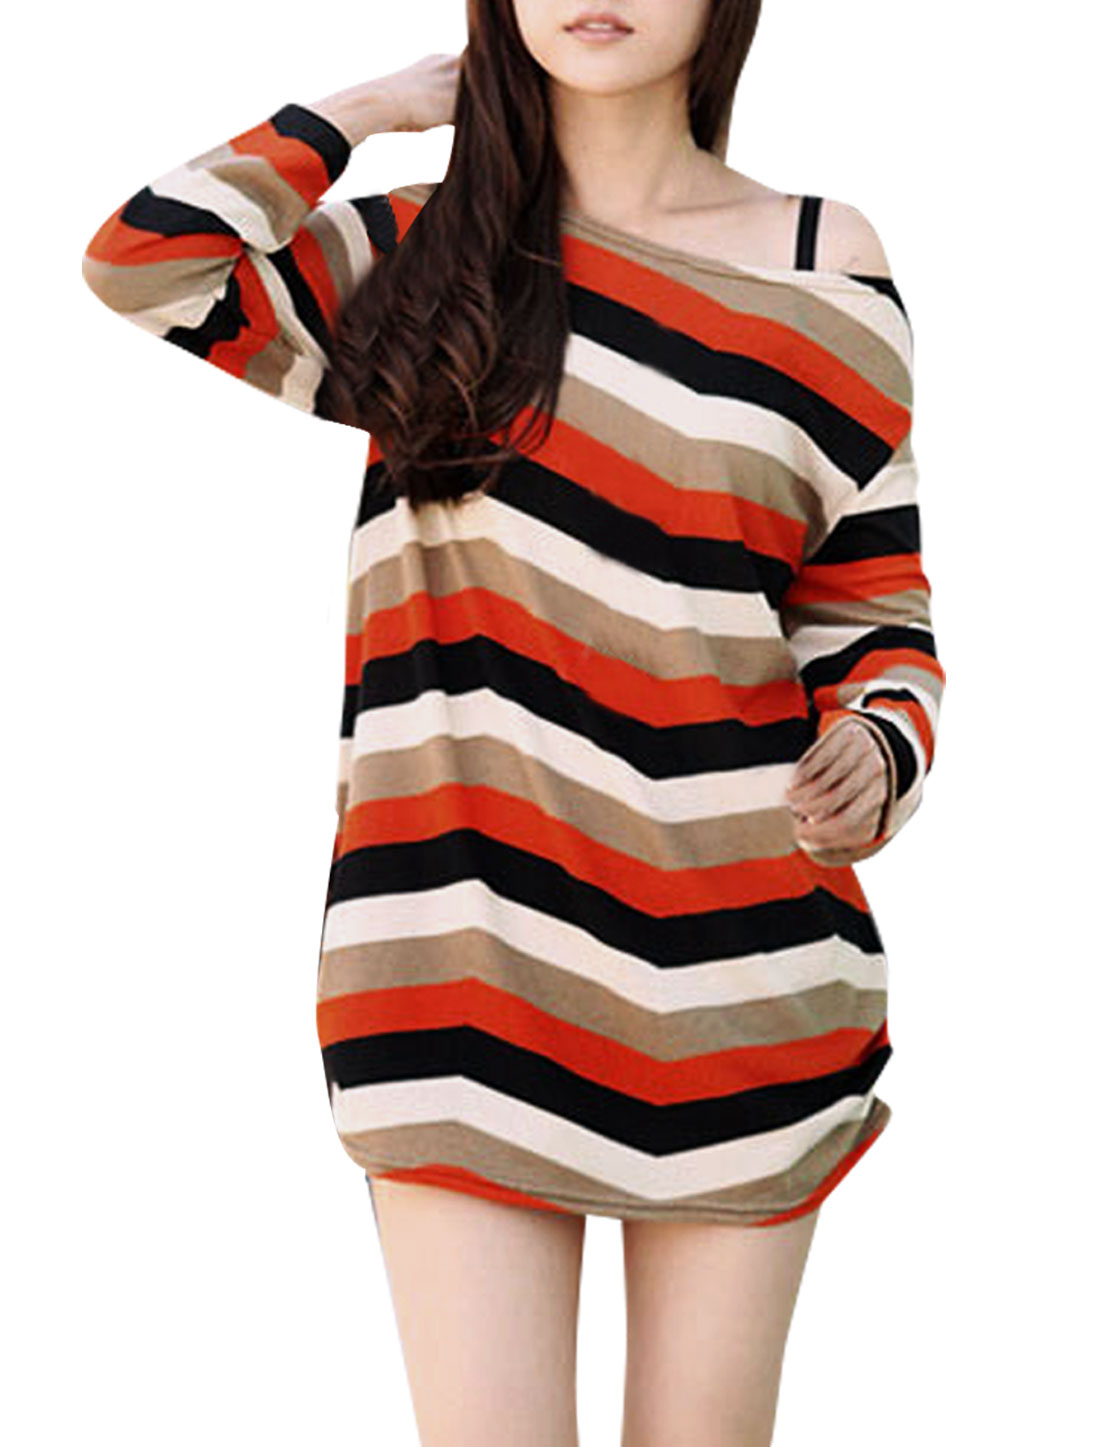 Women Long Sleeved Round Neck Multicolor Zig-Zag Knit Tunic Shirt S